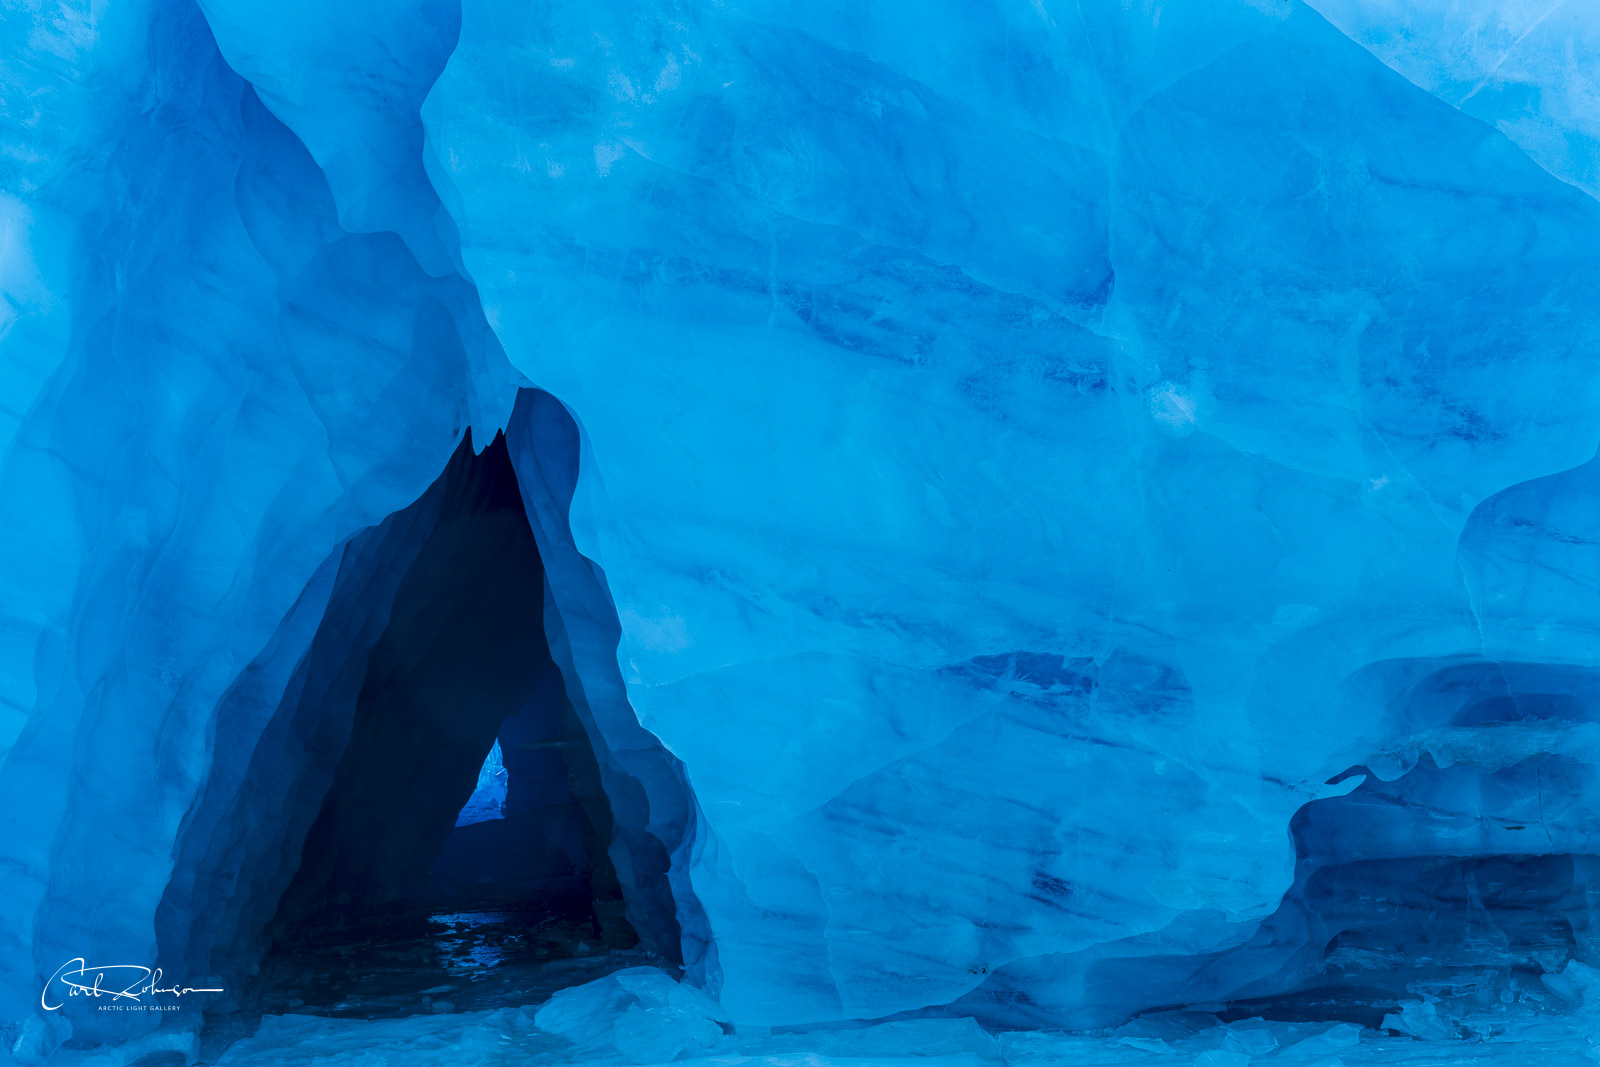 An ice cave in the Spencer Glacier forms a triangle, with deep hues of blue showing in the shade.